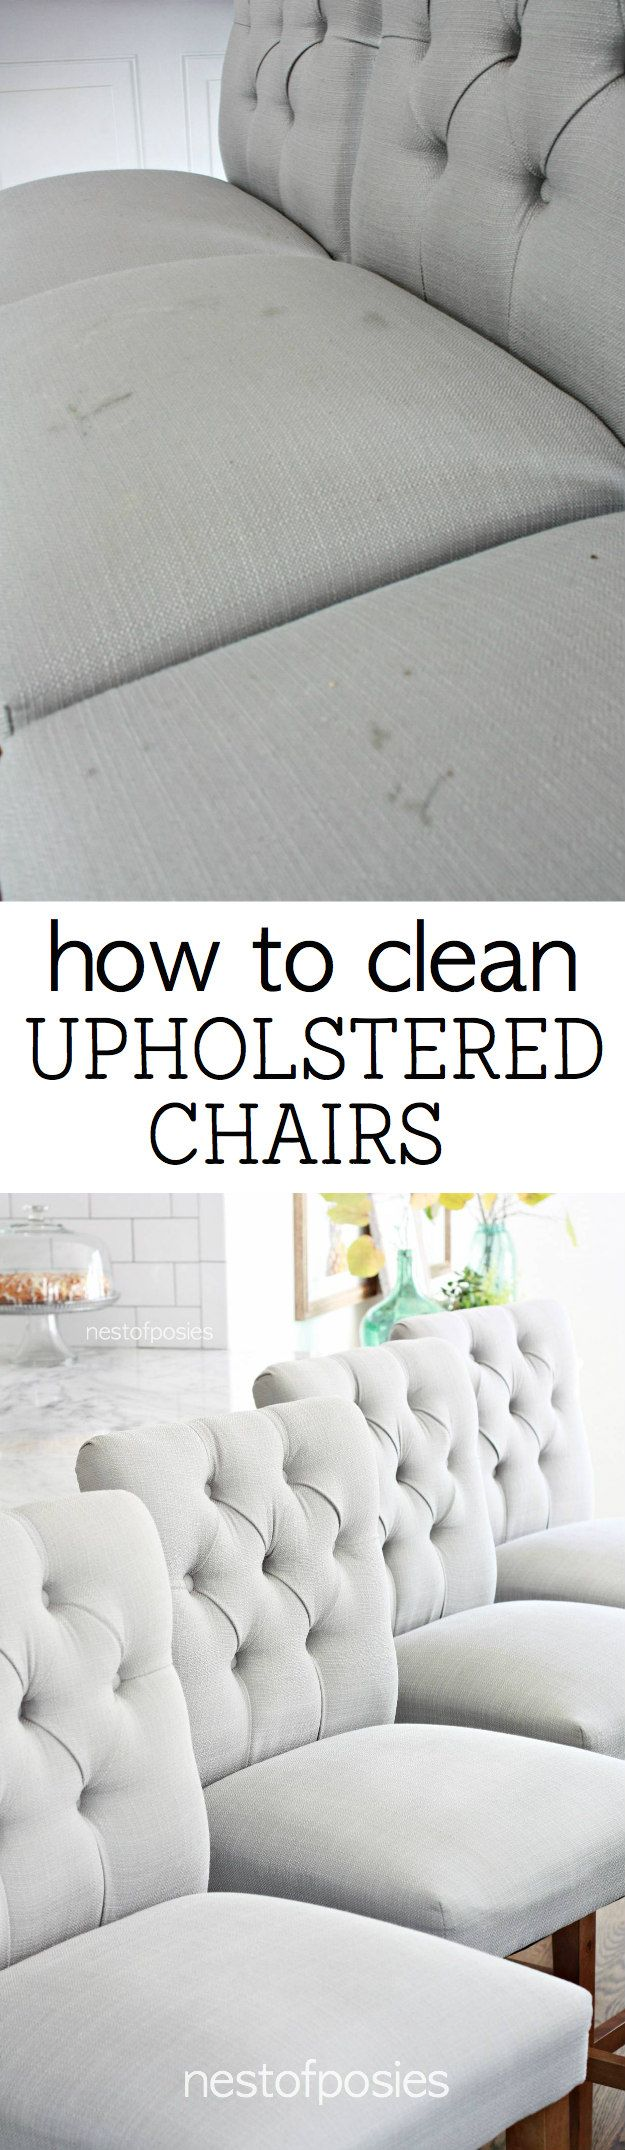 How to Clean Upholstered Chairs from food and grease stains.  Having 3 young kids, I have learned the simplest trick in keeping these clean!